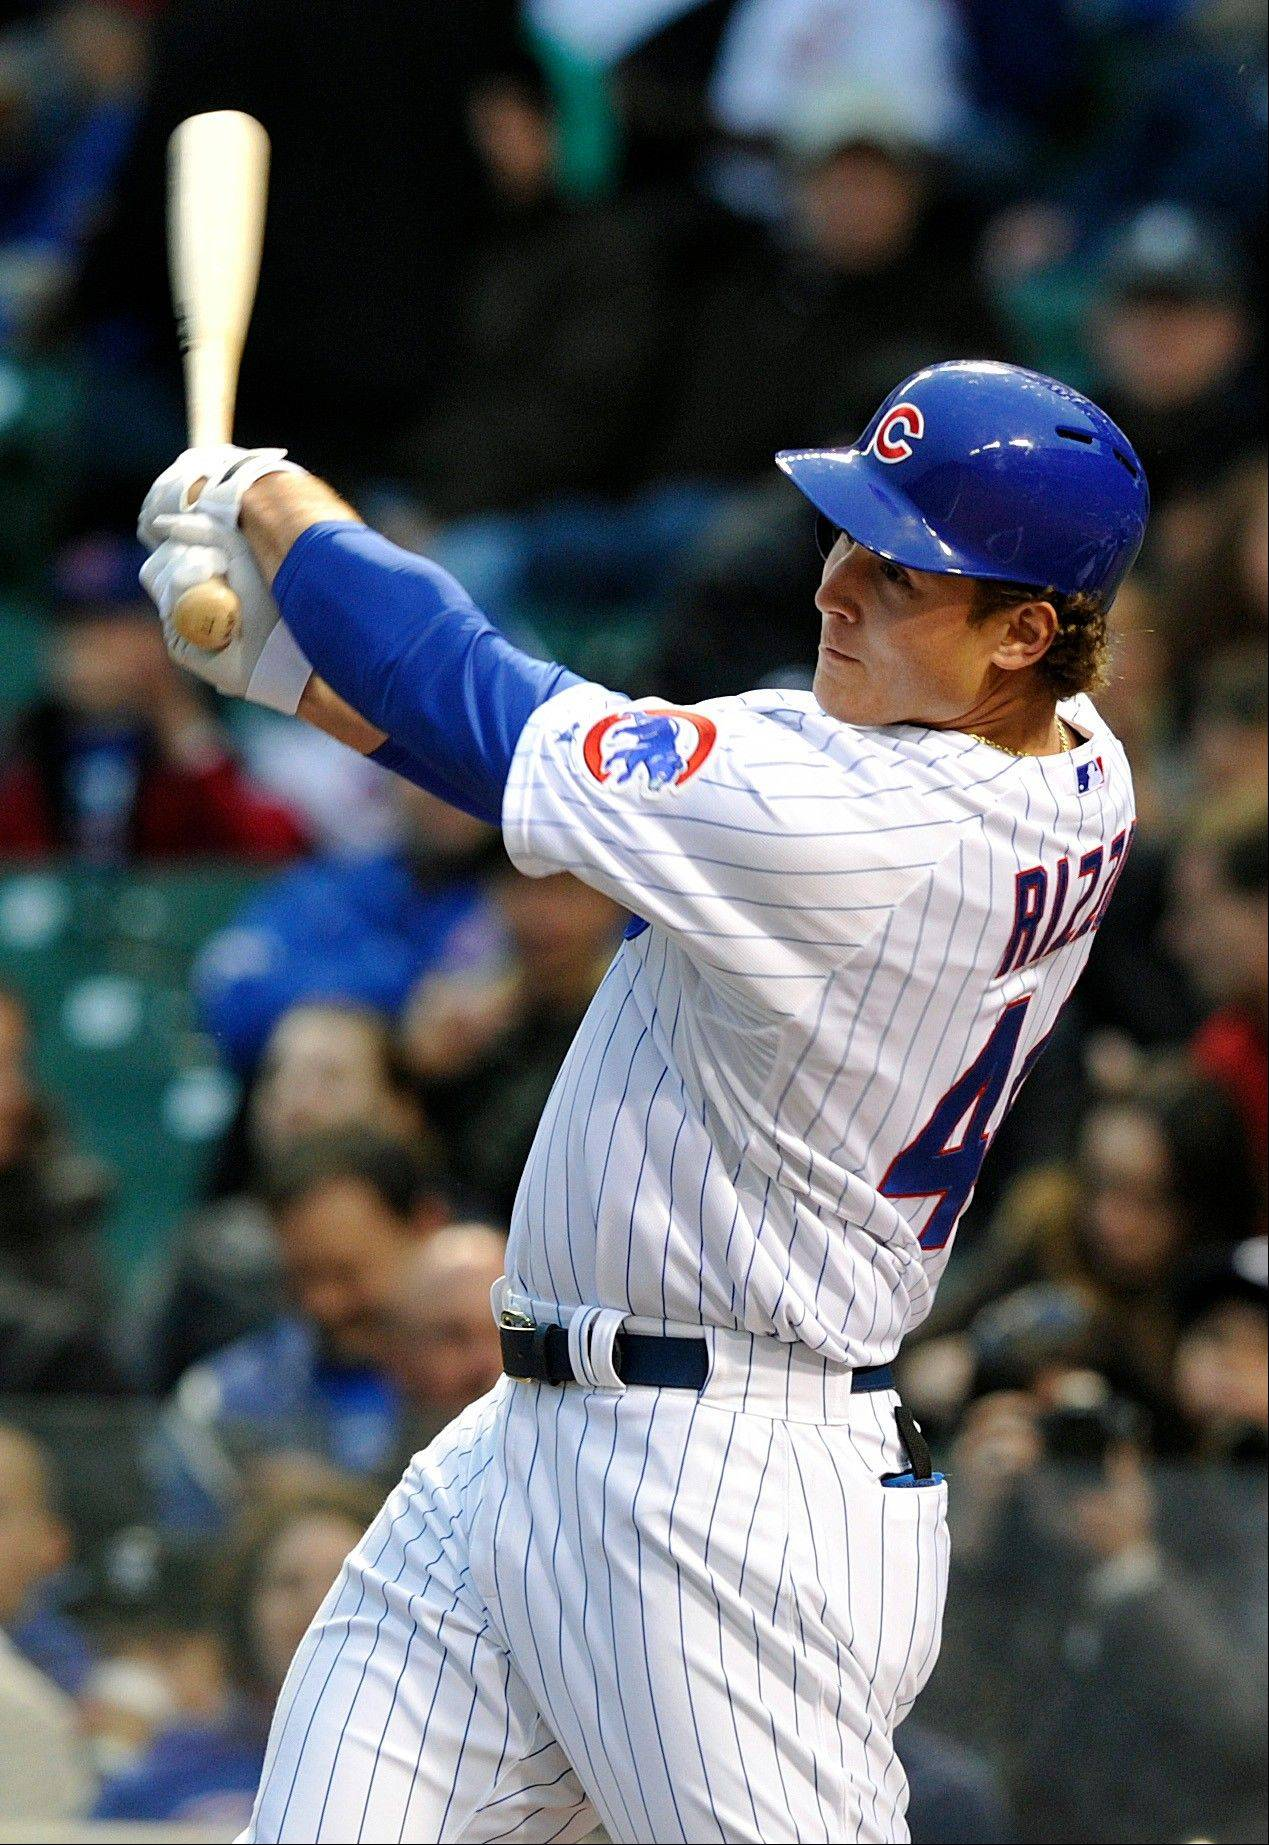 New deal works for both Rizzo, Cubs